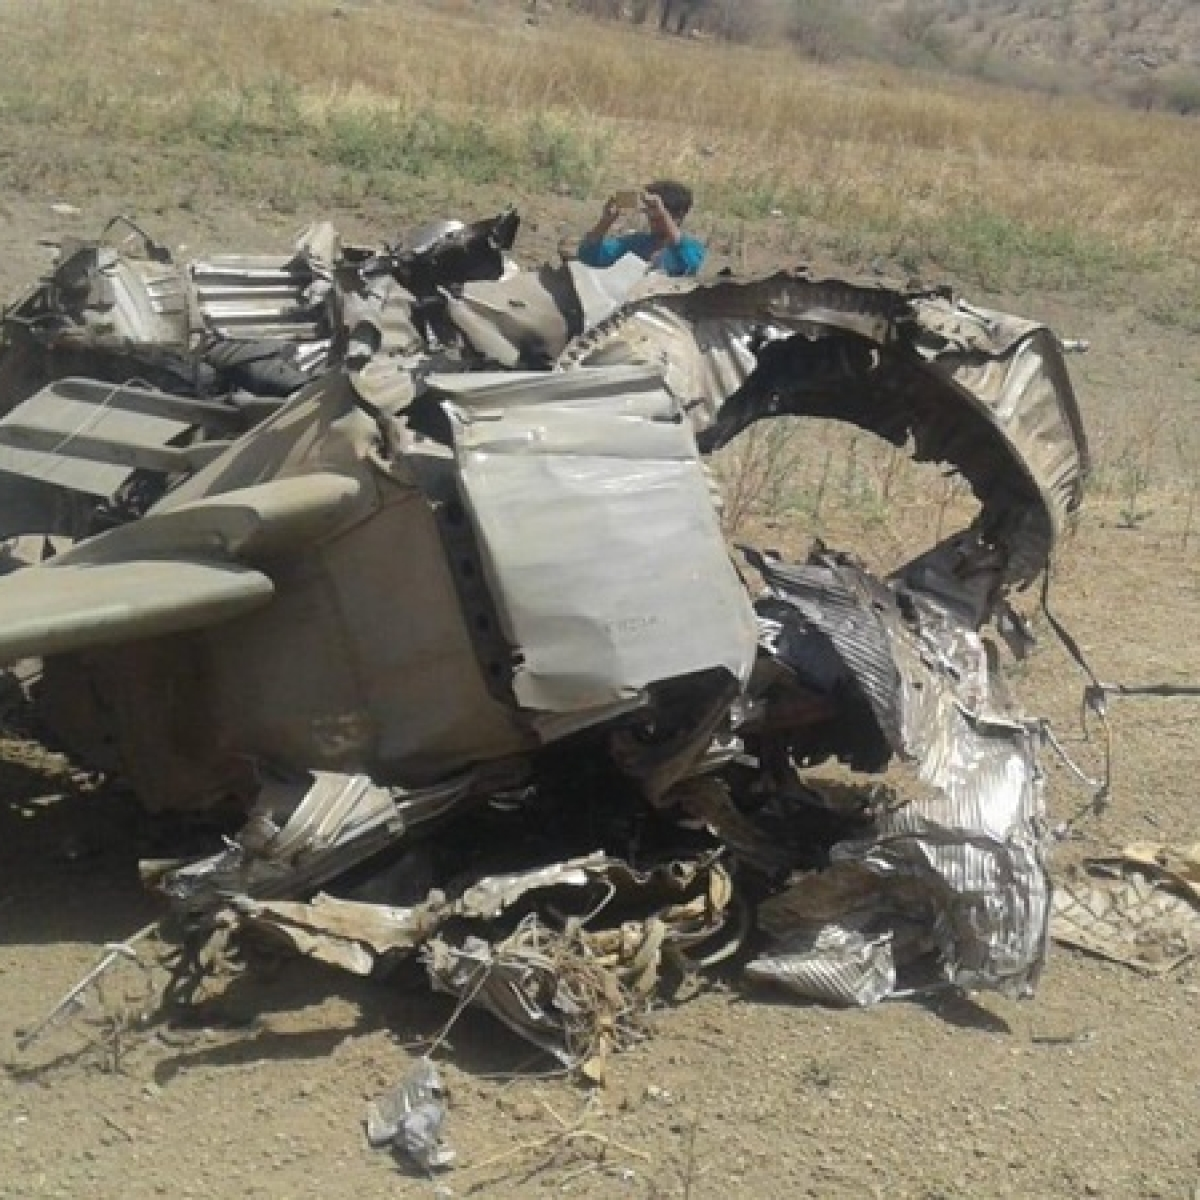 Pakistan Army's aircraft crashes in paddy field